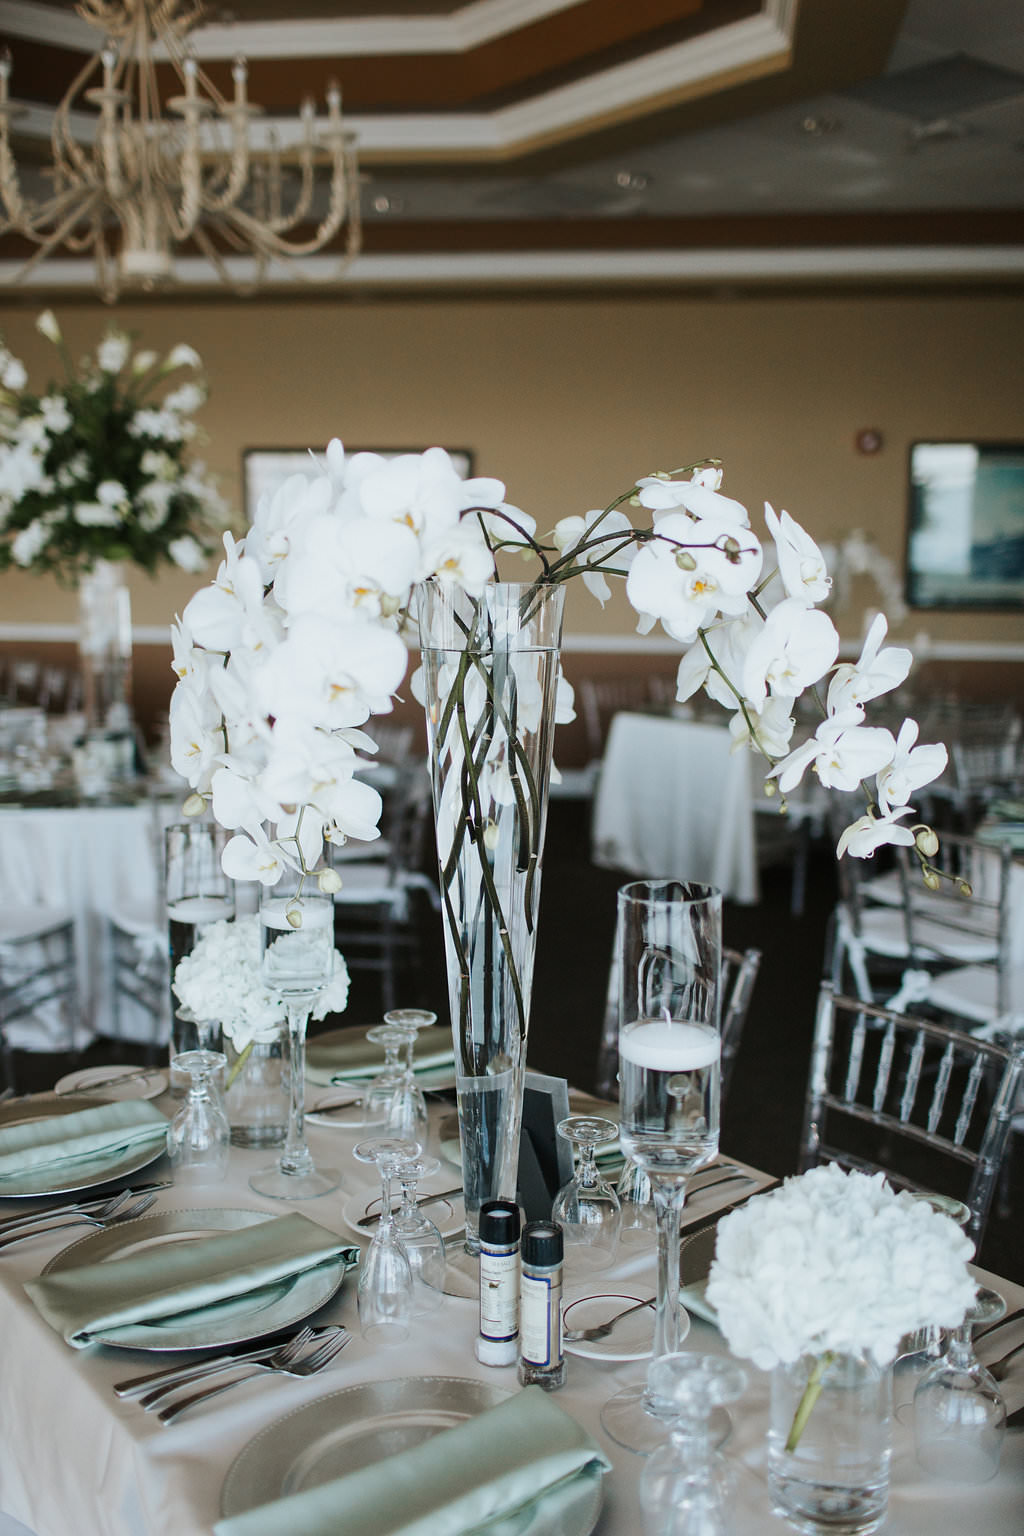 Elegant, Ballroom Wedding Reception Decor, Tall White Orchid Centerpiece in Glass Cylinder on White Satin Tablecloth, with Silver Plate Chargers and Mint Green Linens   St. Petersburg Wedding Venue Isla Del Sol Yacht and Country Club   St. Petersburg Wedding Rentals Over the Top Rentals and Gabro Event Rentals